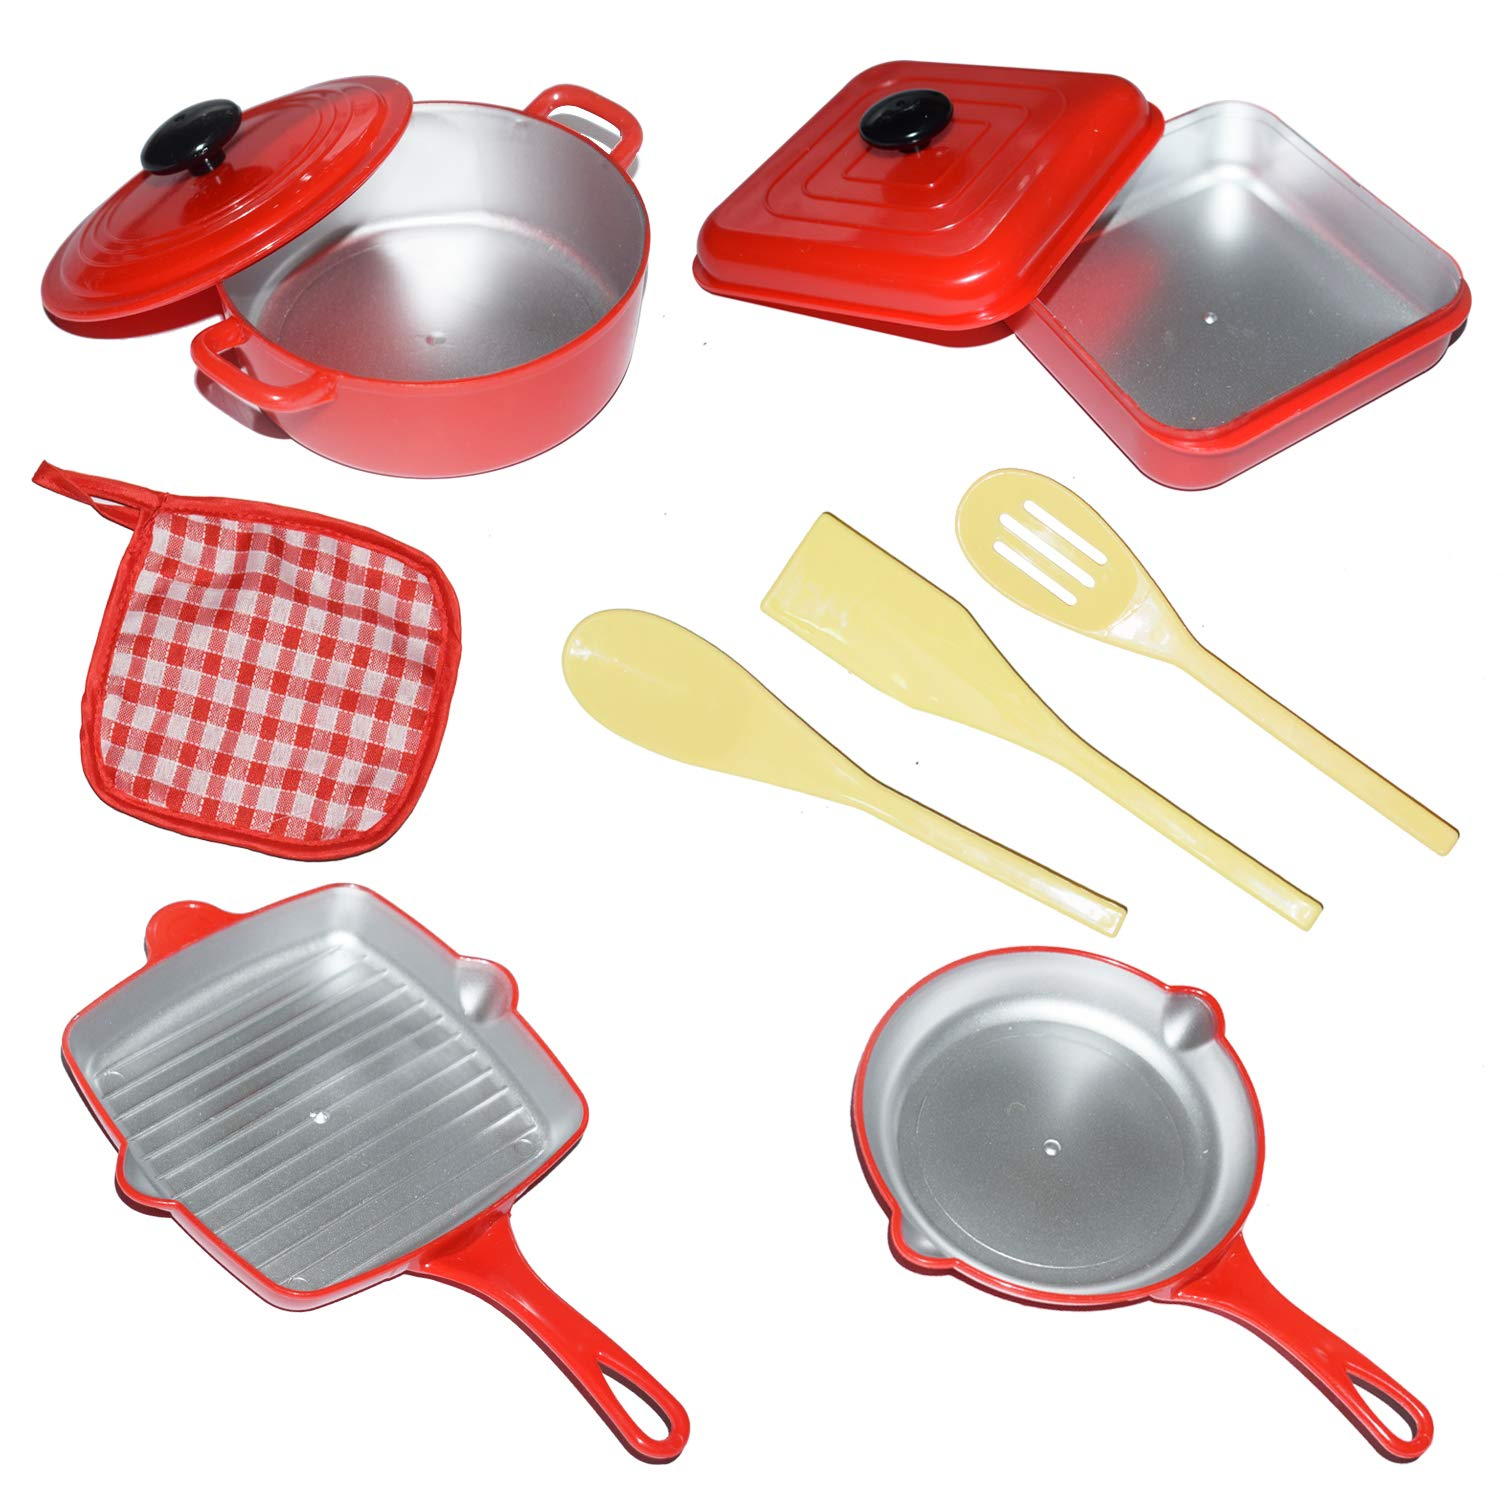 Liberty Imports 10 Piece Pots and Pans Kitchen Cookware Playset for Kids with Cooking Utensils Set by Liberty Imports